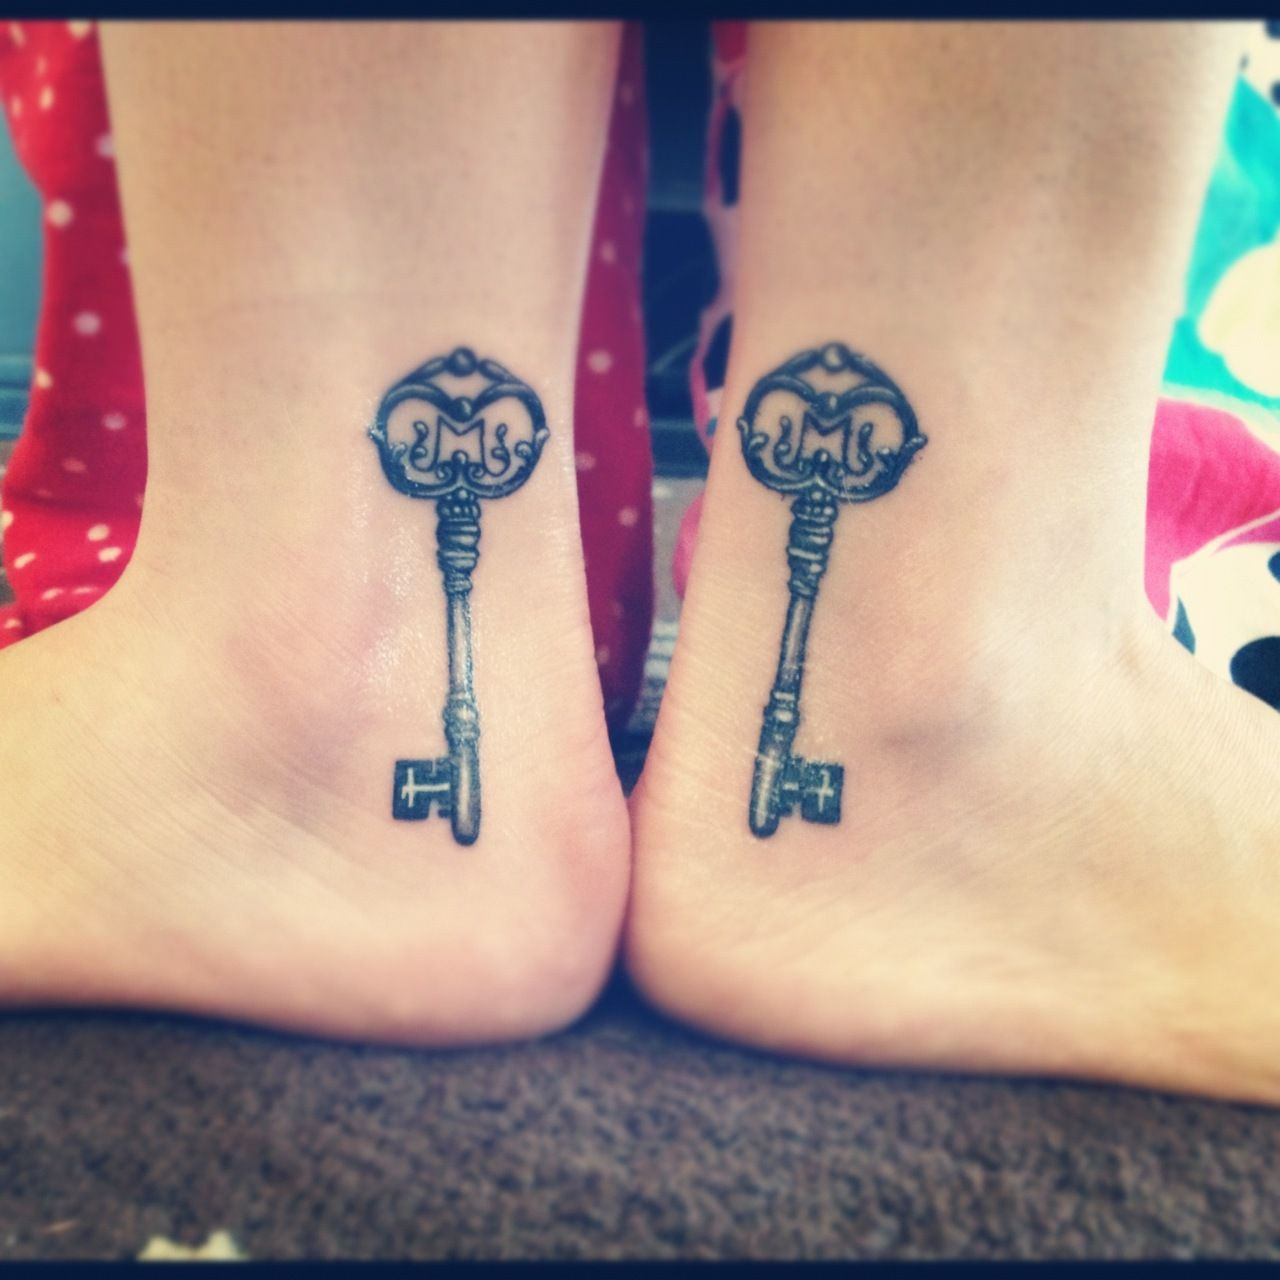 Cool tattoo ideas for brothers matching sister tattoos  tattoo ideas  pinterest  matching